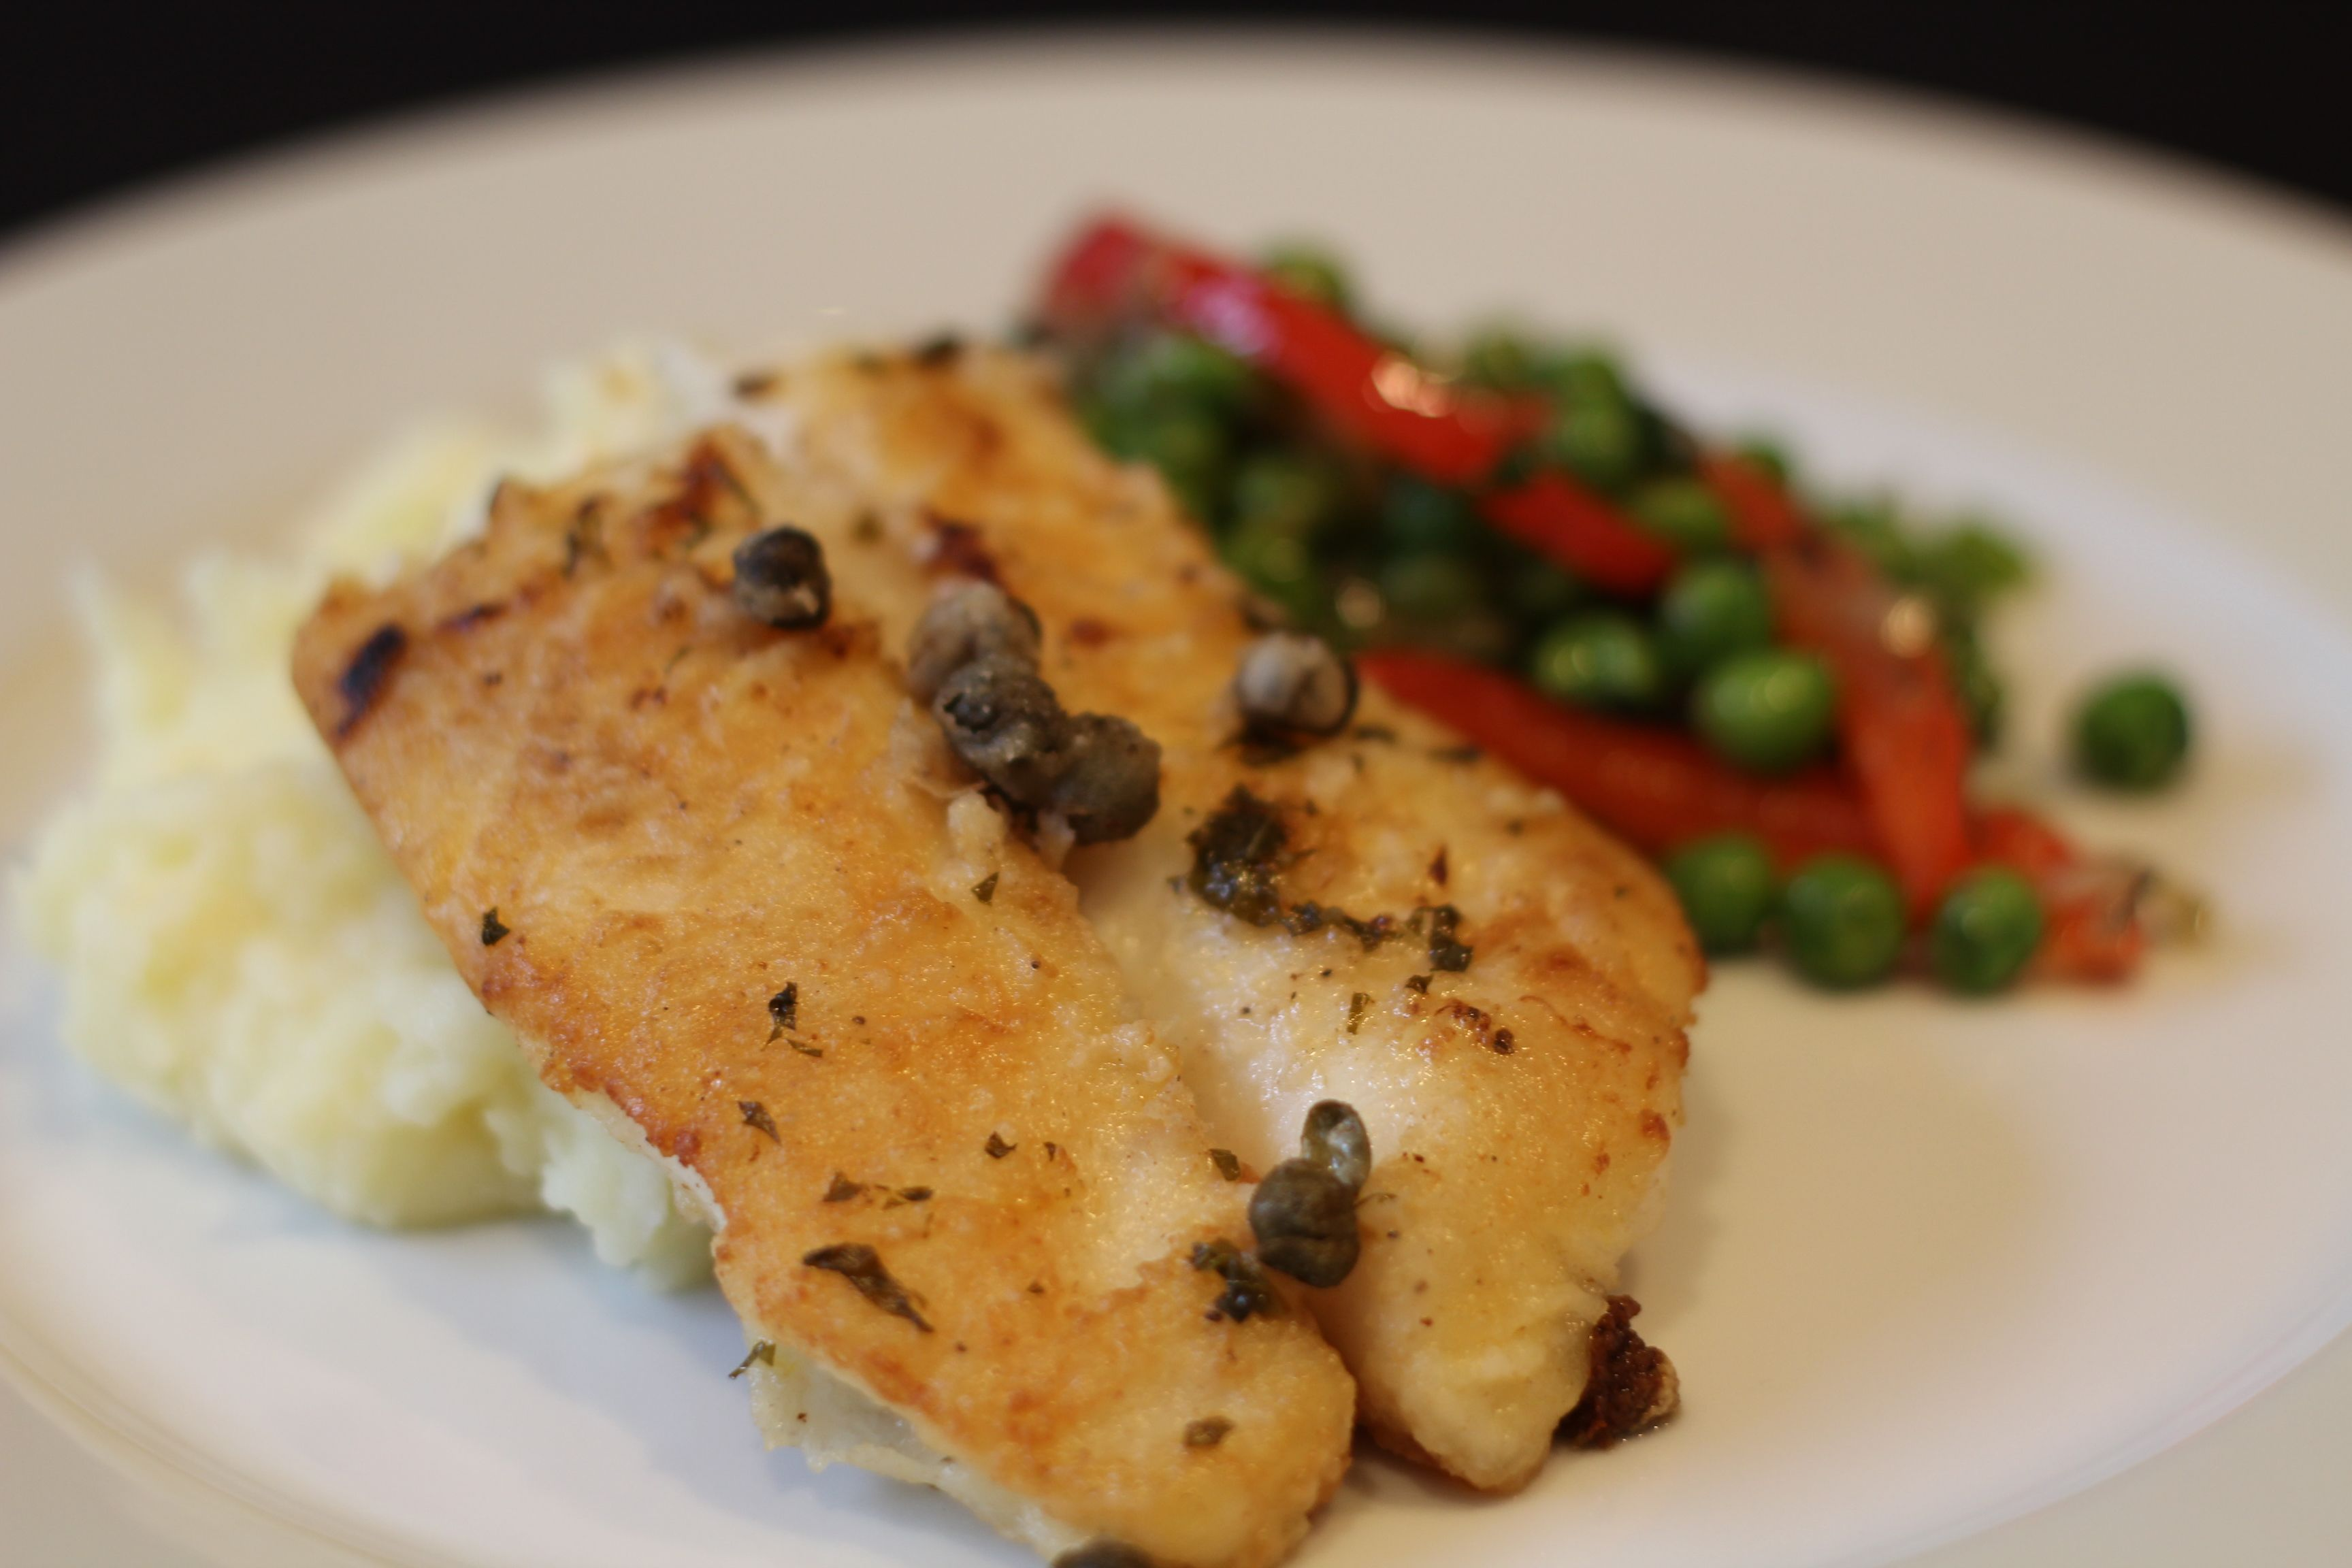 Recipe Highlight: The Perfect Meal (Pan-Fried Orange Roughy with Orange Mint Sauce, Parmesan Mashed Potatoes and Pea and Mint Salad)